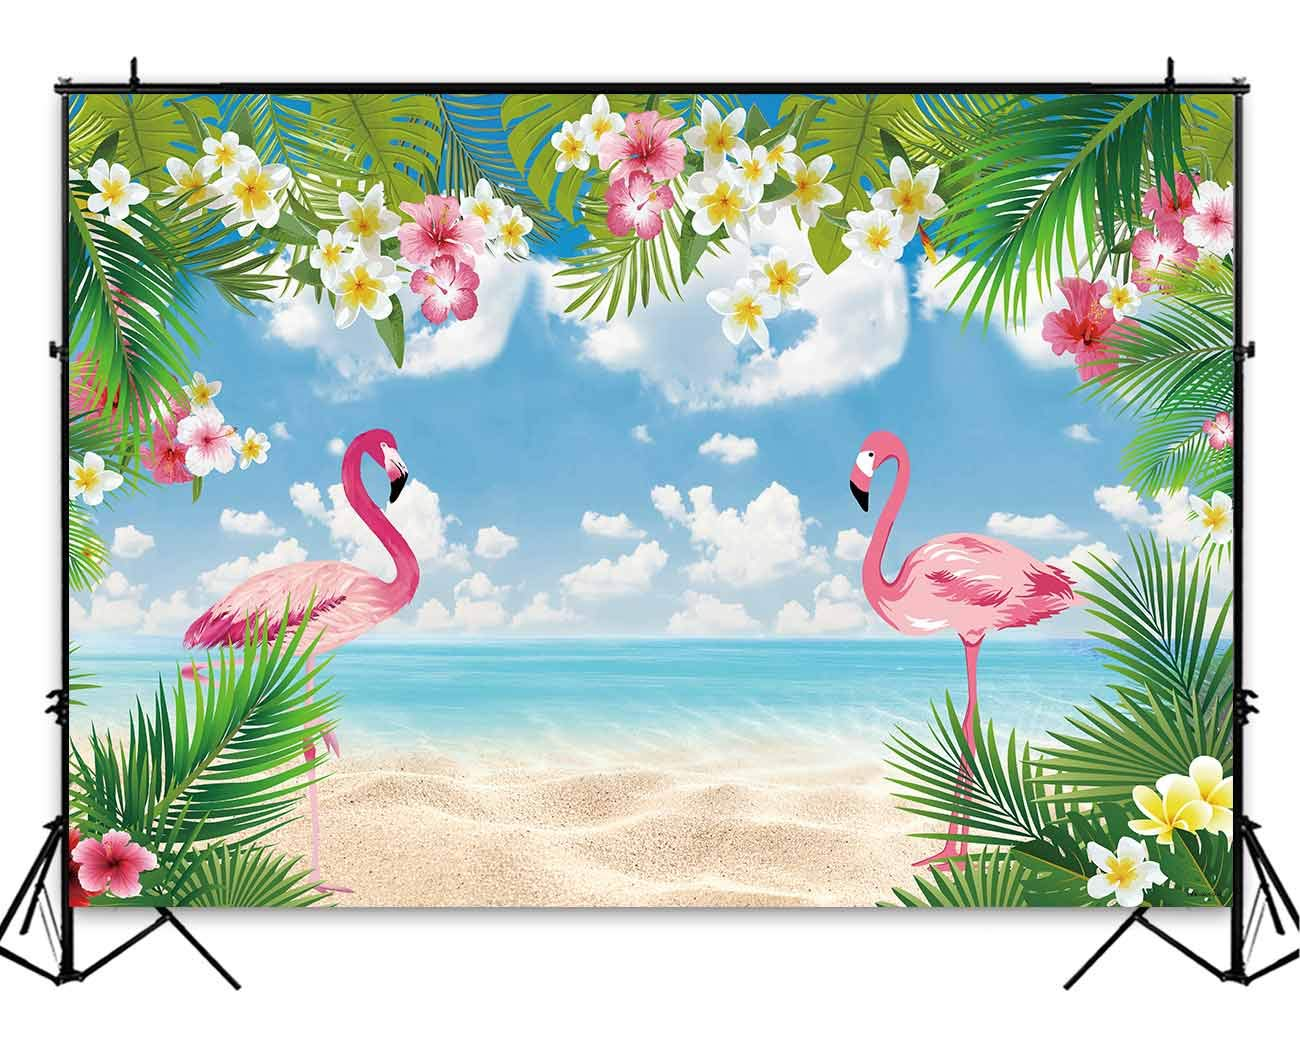 Funnytree 8x6ft Durable Fabric Summer Flamingo Party Backdrop No Wrinkles Tropical Hawaiian Beach Luau Photography Background Birthday Flamingle Sea Palm Floral Baby Shower Decor Photo Booth Banner by Funnytree (Image #1)